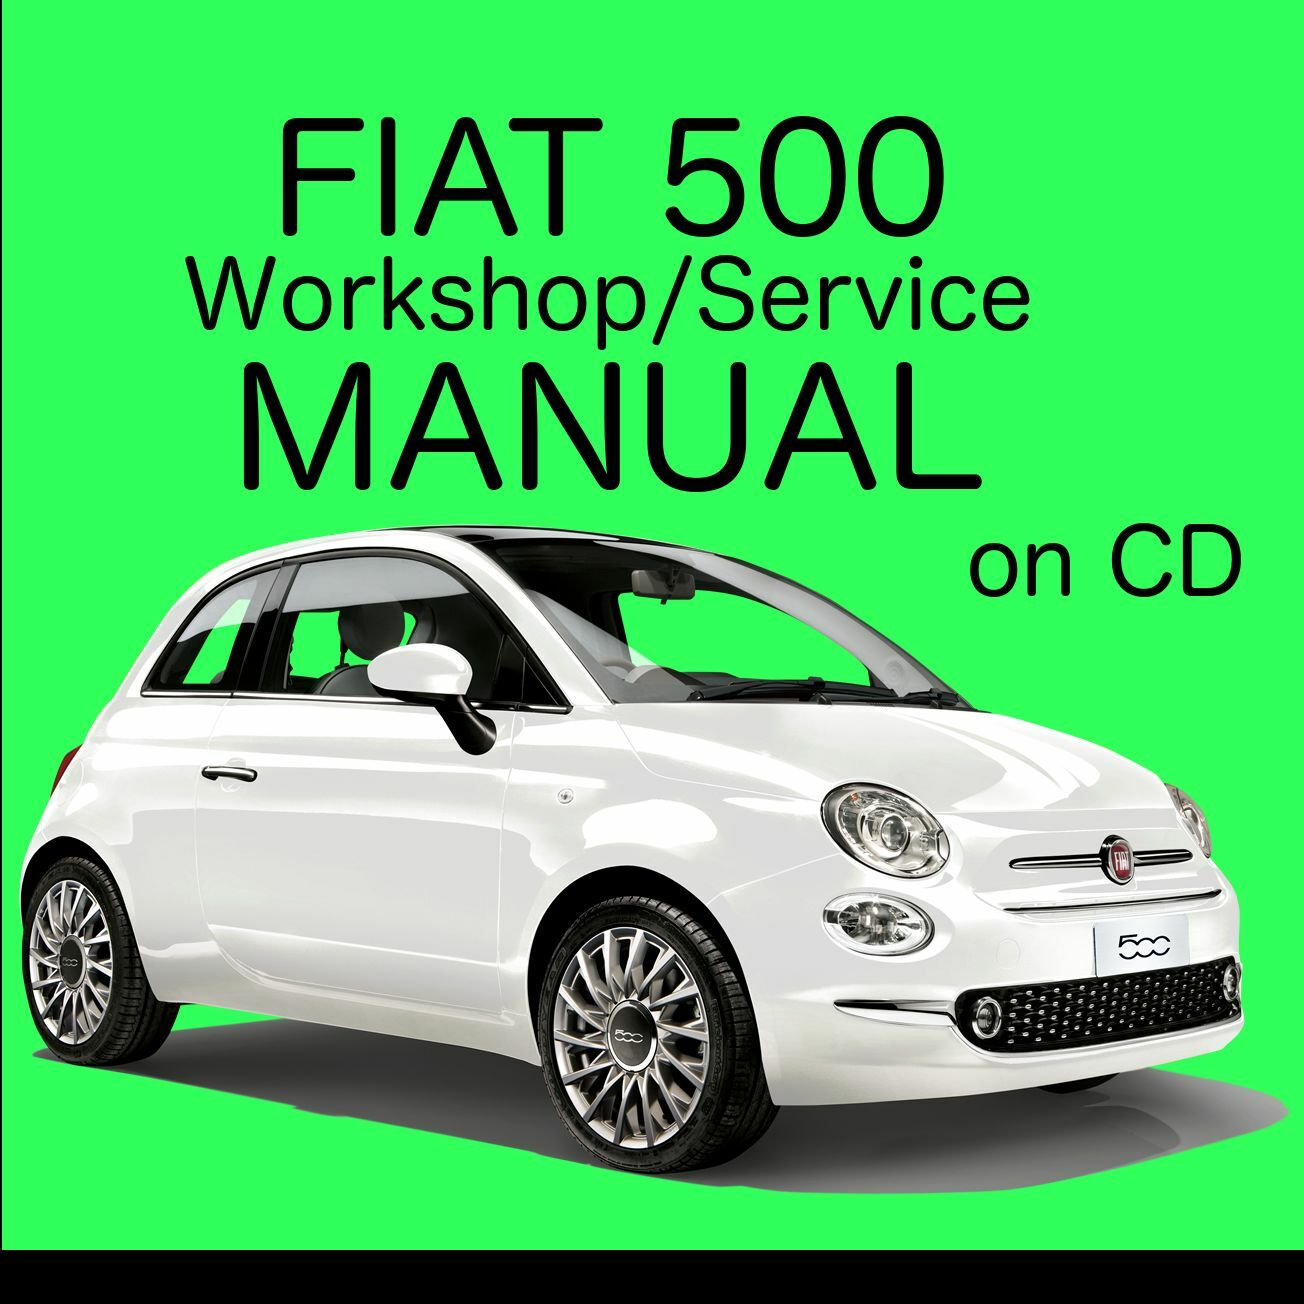 fiat 500 2007 2015 type 312 workshop service repair manual on cd picclick uk. Black Bedroom Furniture Sets. Home Design Ideas